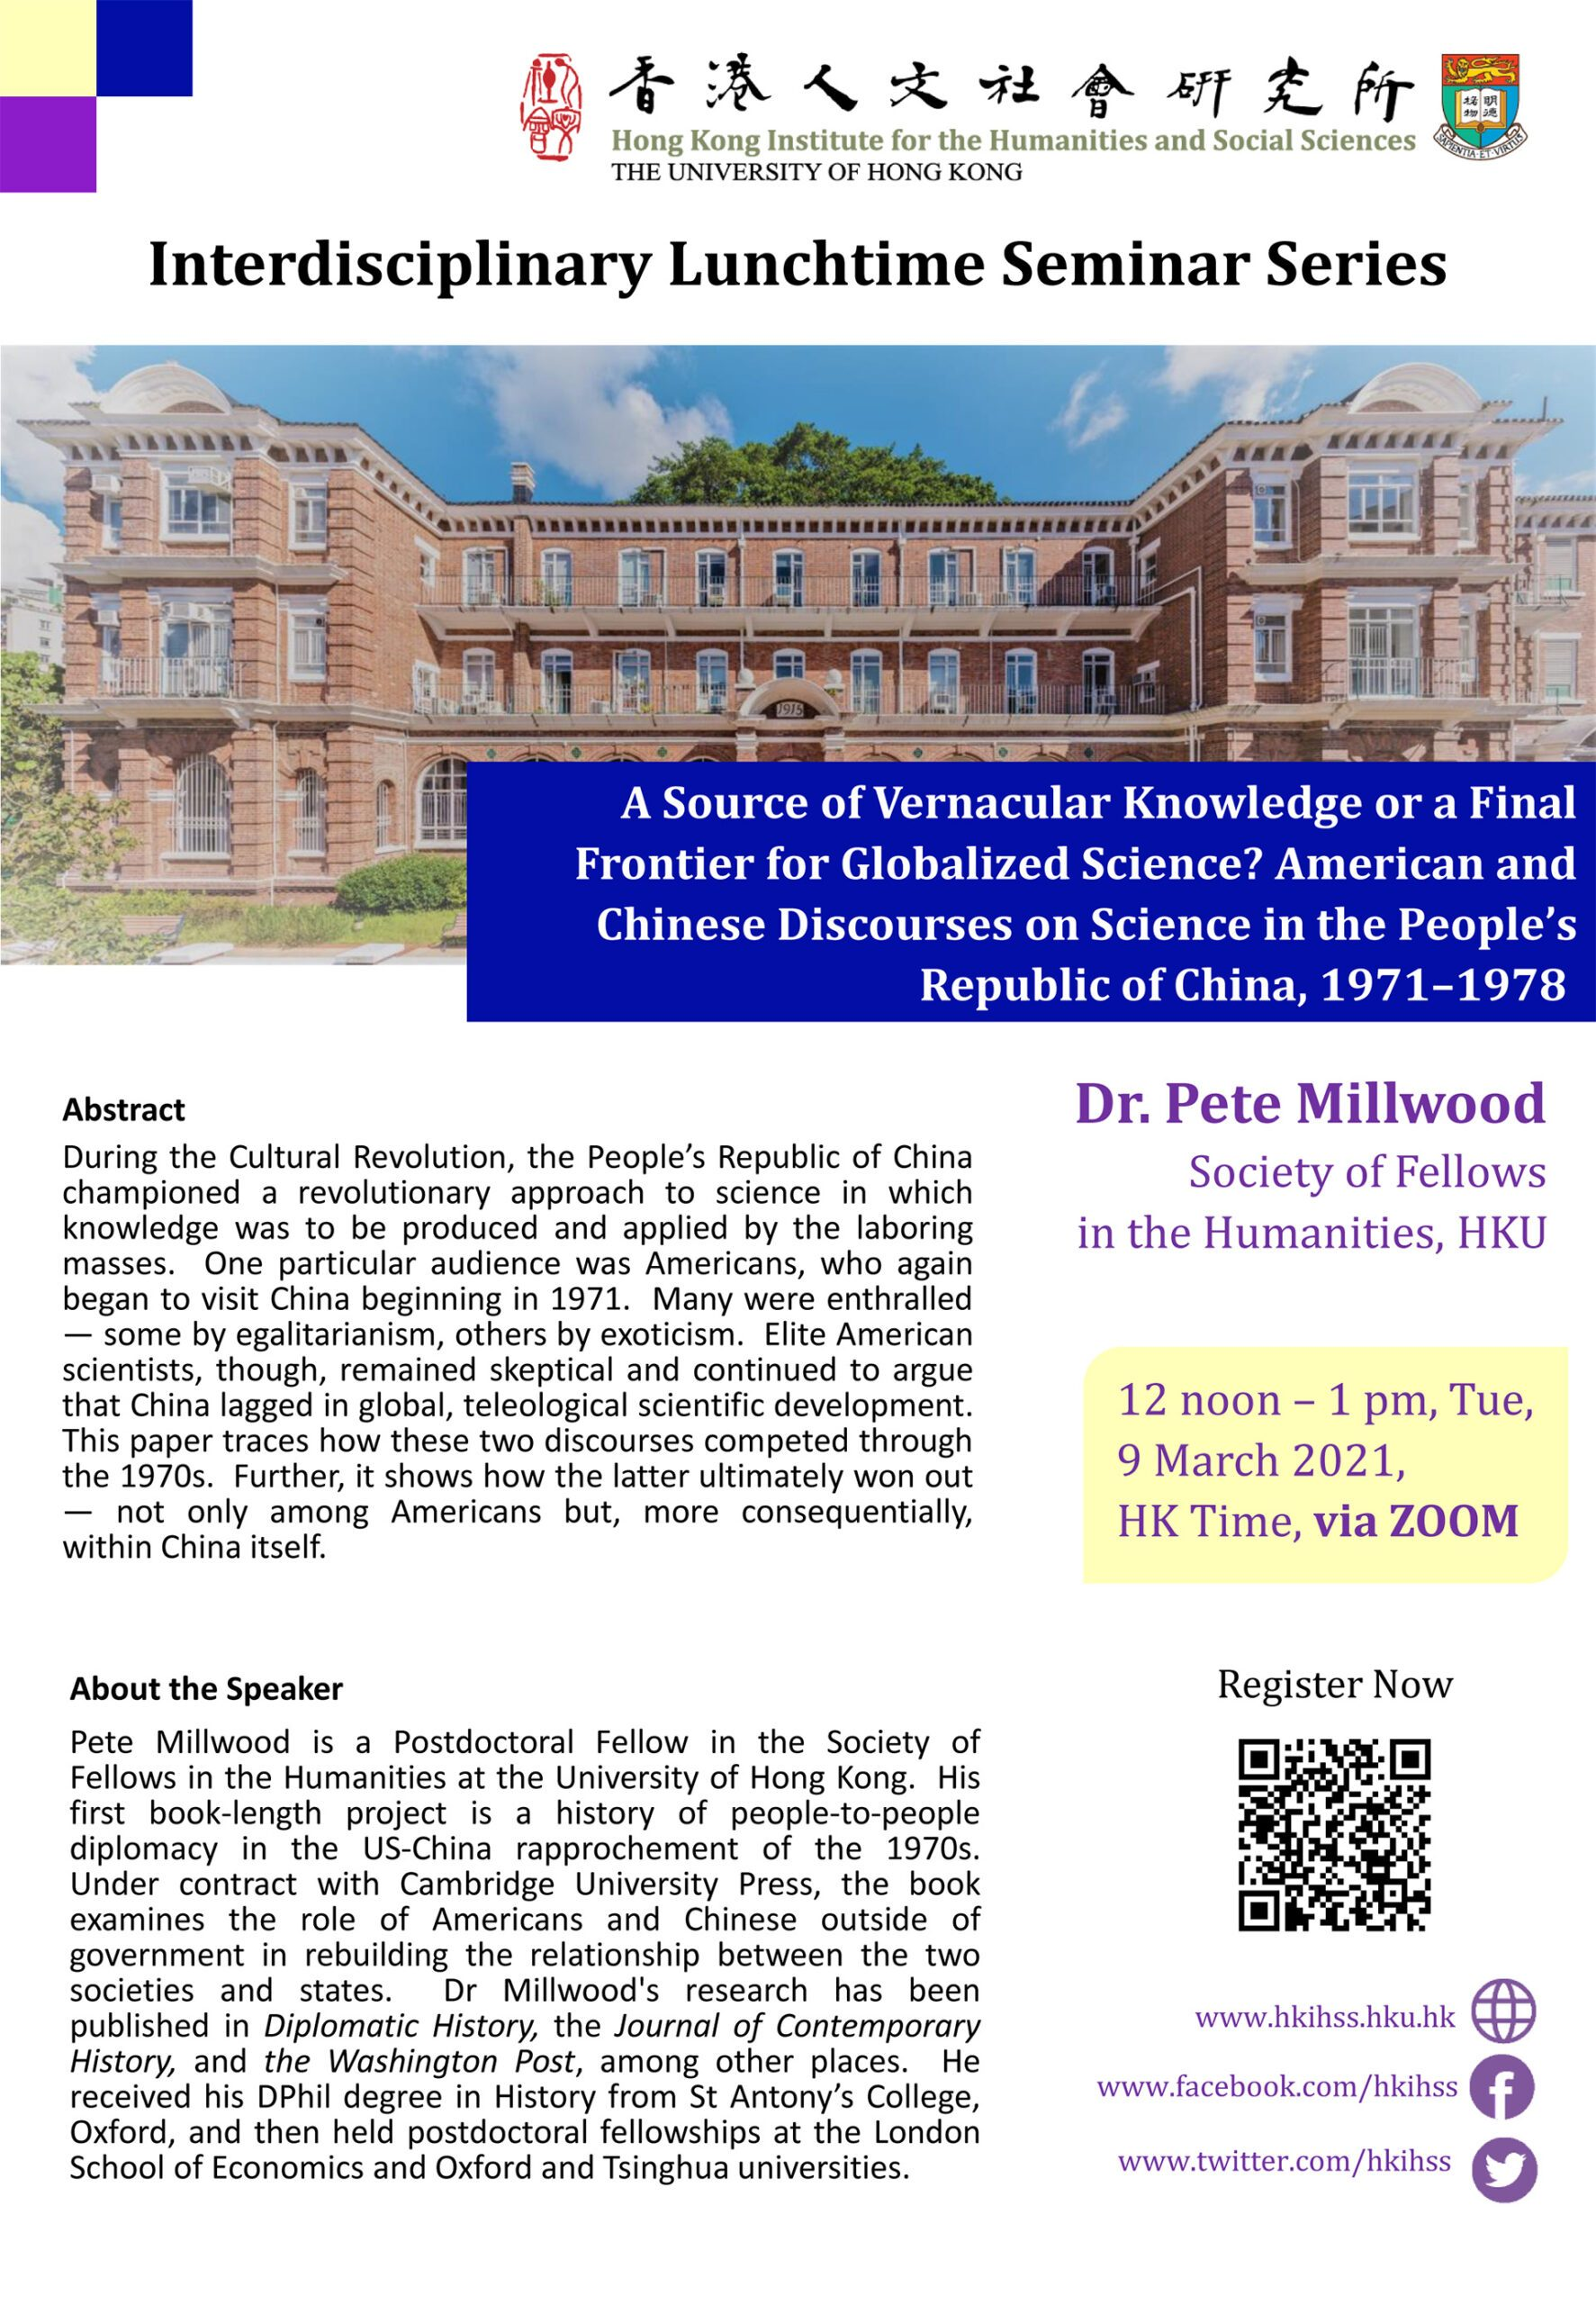 """Interdisciplinary Lunchtime Seminar on """"A Source of Vernacular Knowledge or a Final Frontier for Globalized Science? American and Chinese Discourses on Science in the People's Republic of China, 1971 – 1978"""" by Dr. Pete Millwood (March 9, 2021)"""